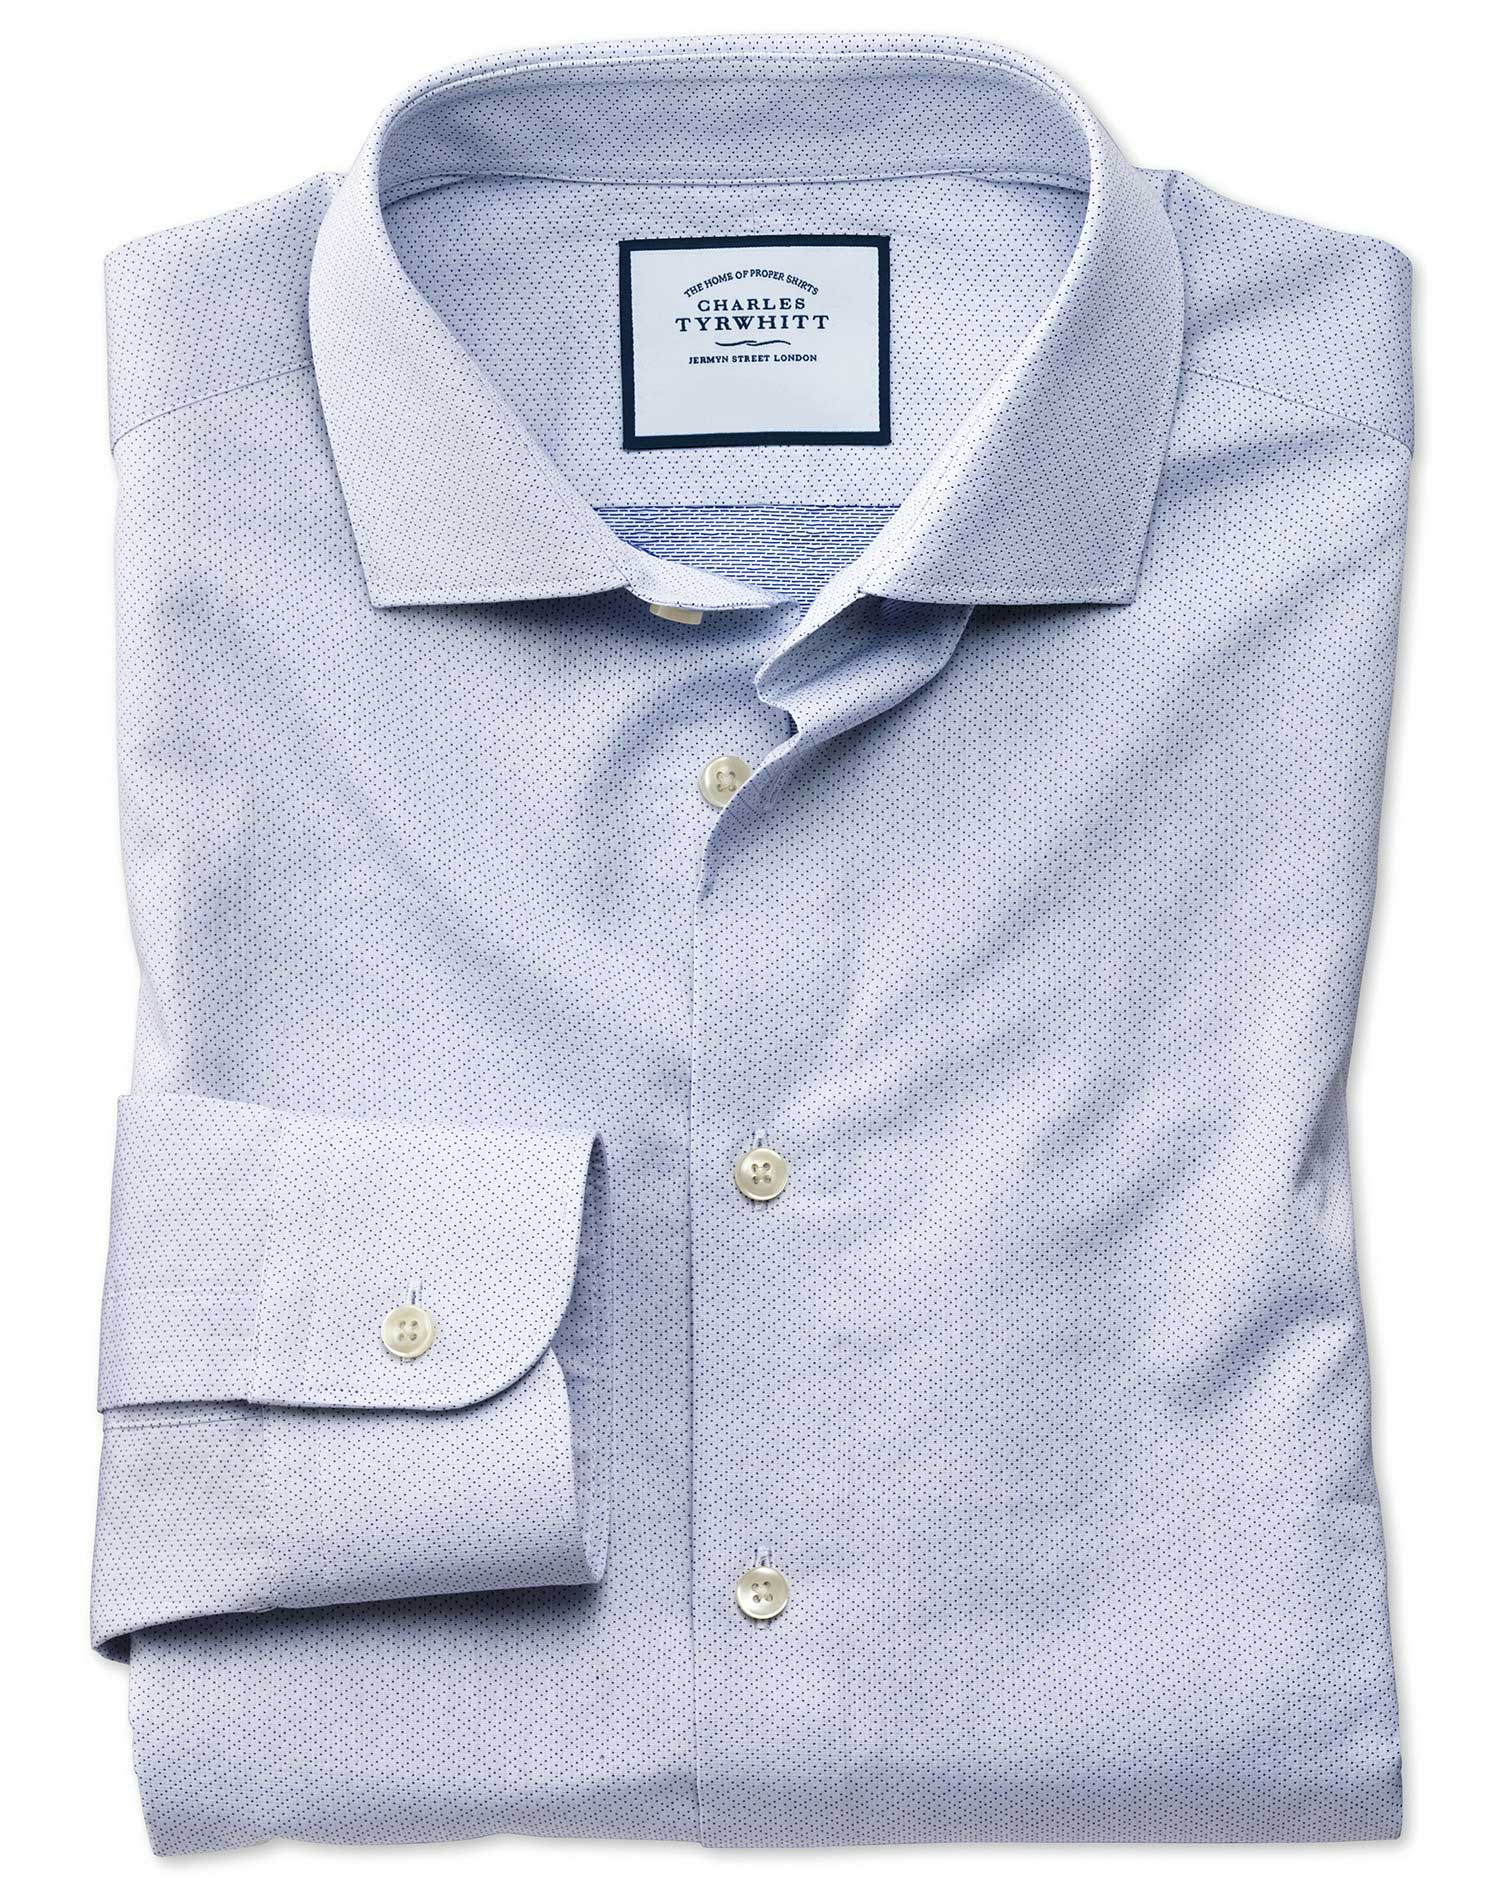 Slim Fit Business Casual Blue Diamond Dobby Egyptian Cotton Formal Shirt Single Cuff Size 16/38 by C